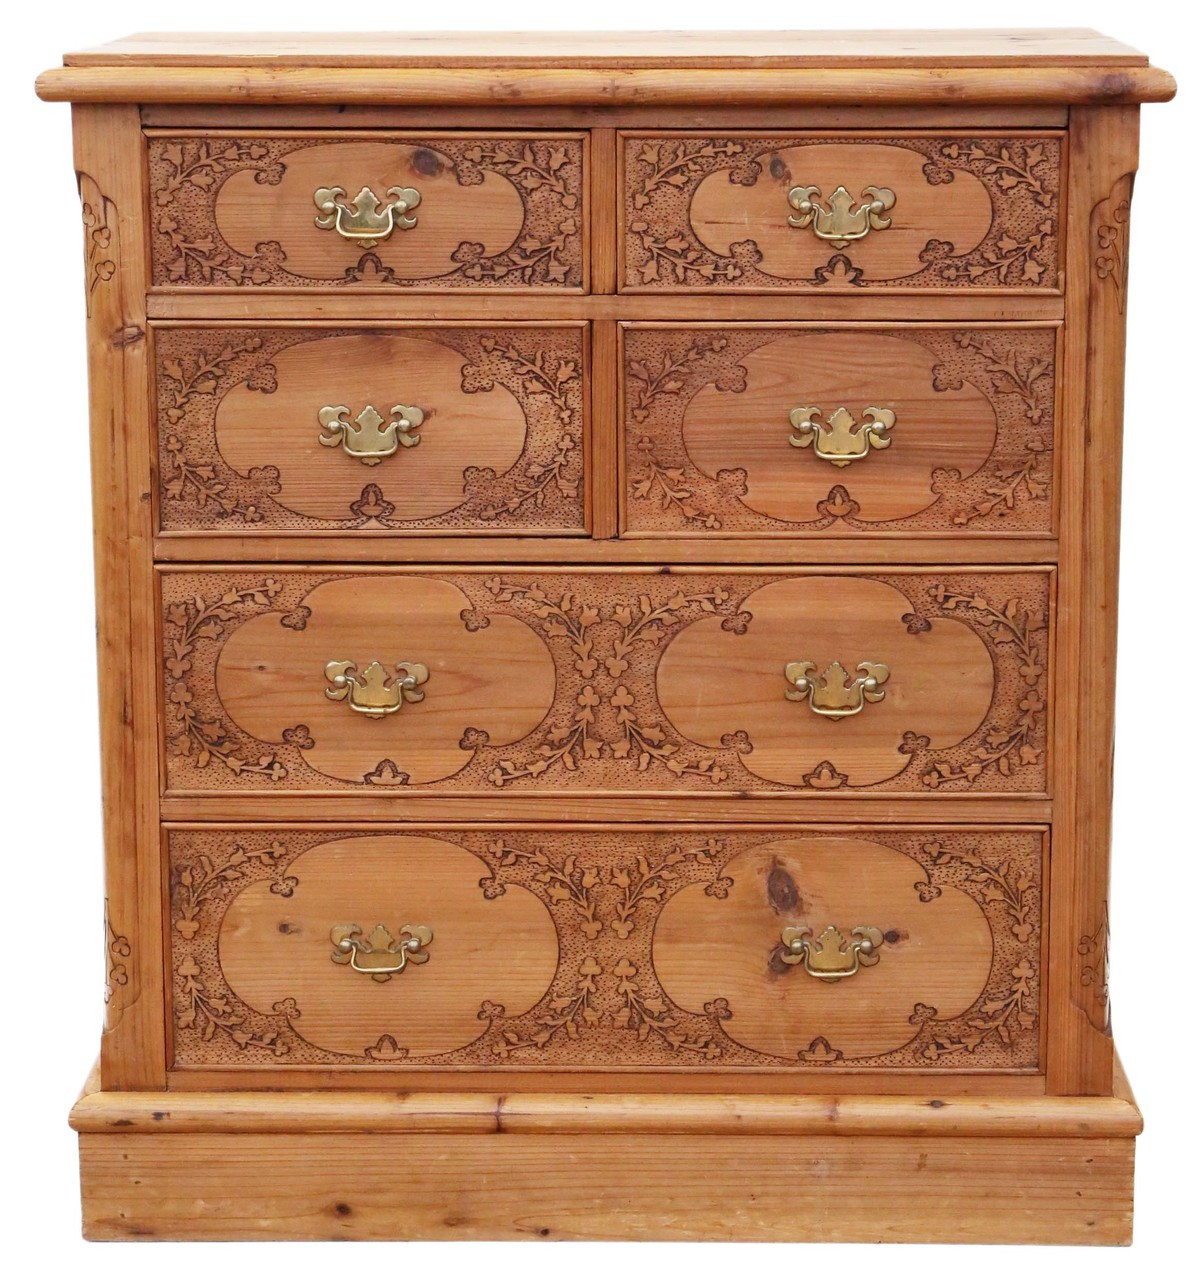 Victorian Pine Chest Of Drawers Antique Victorian Style Pine Pokerwork Chest Of Drawers Prior